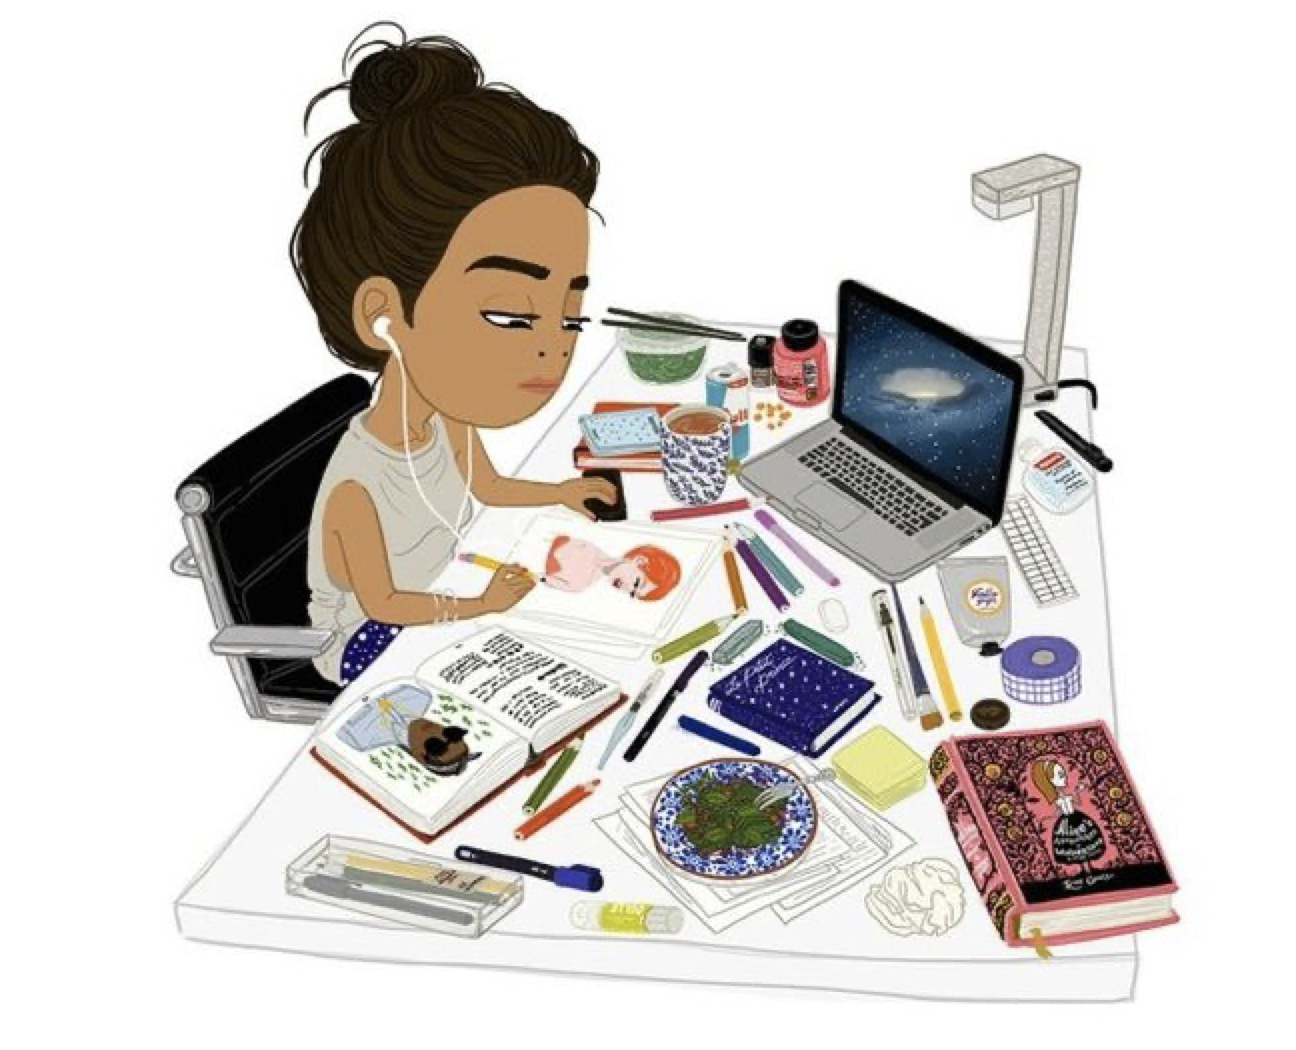 Illustrated image of brown girl sitting at her desk